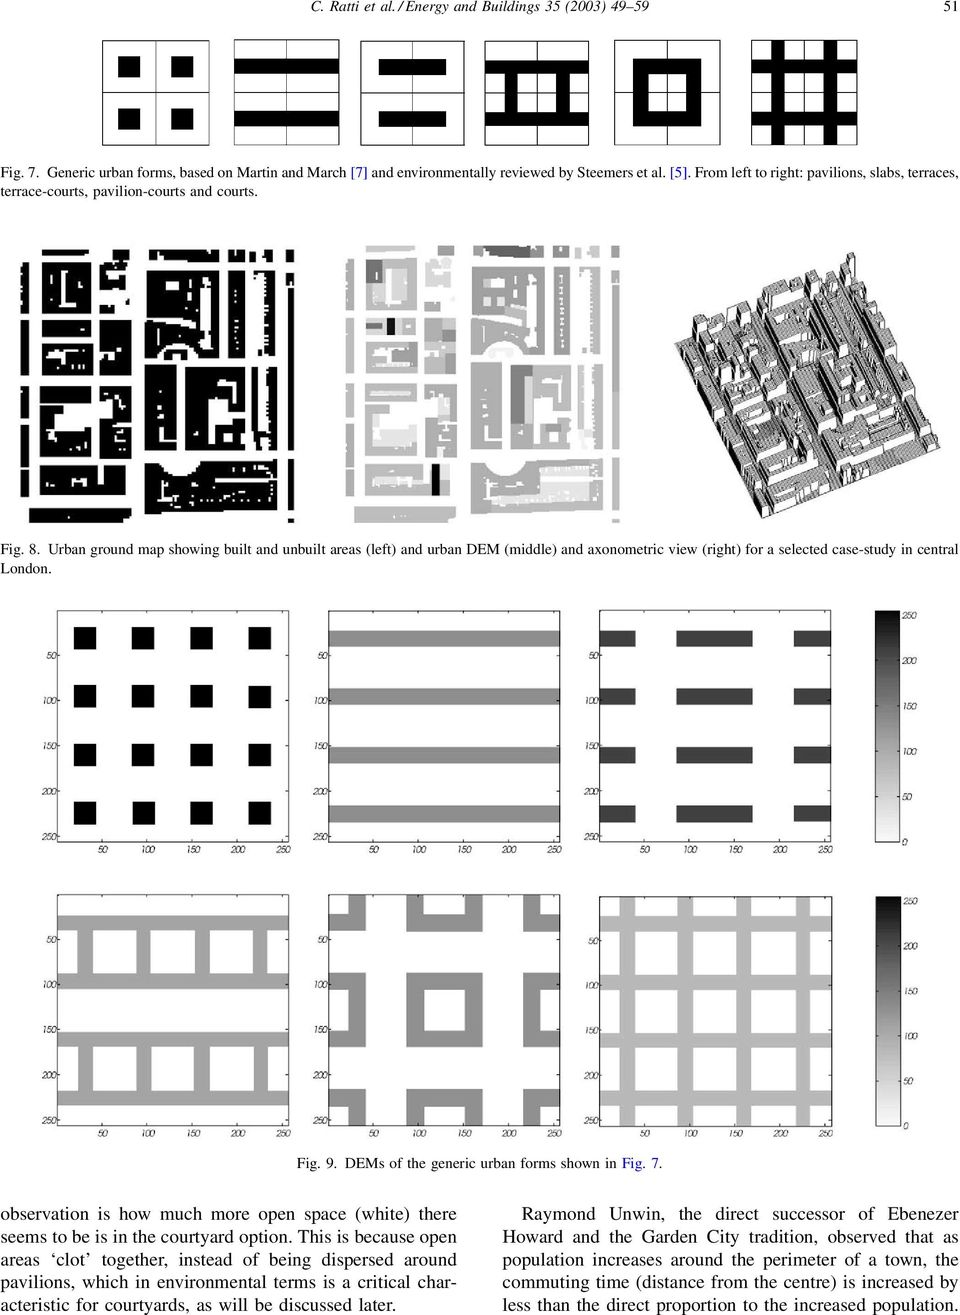 Urban ground map showing built and unbuilt areas (left) and urban DEM (middle) and axonometric view (right) for a selected case-study in central London. Fig. 9.